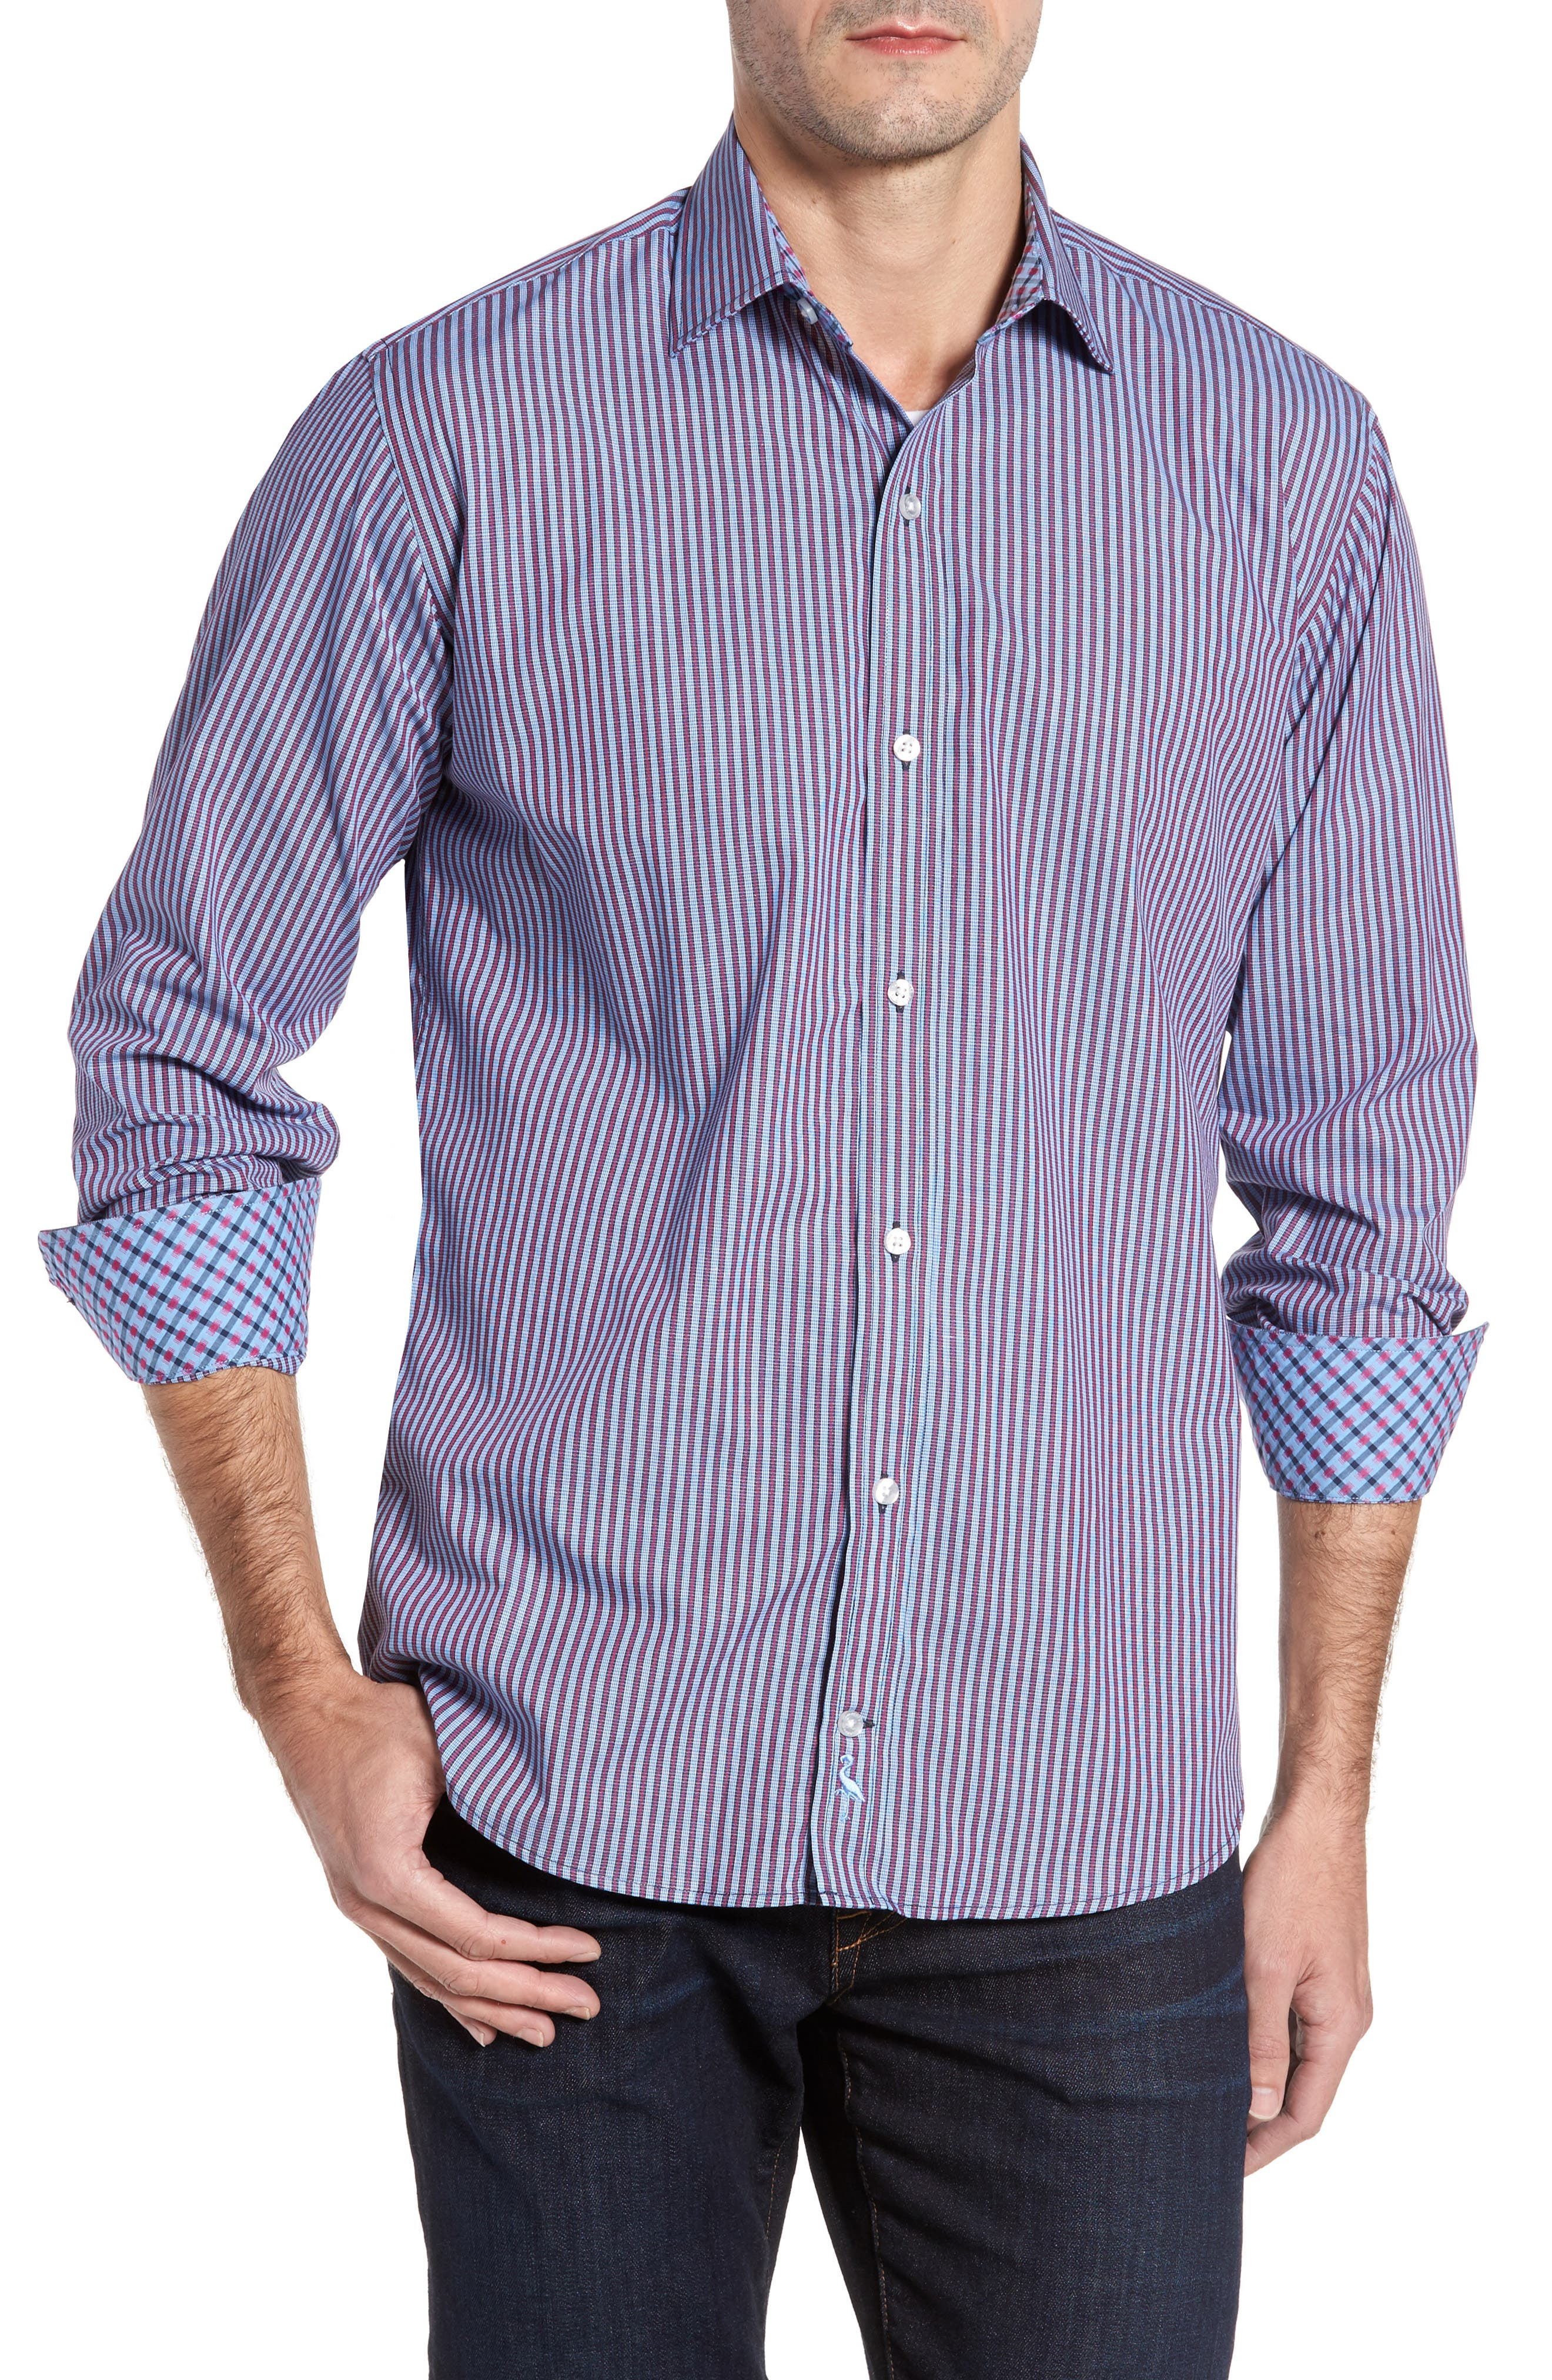 Main Image - TailorByrd Brownfields Striped Sport Shirt